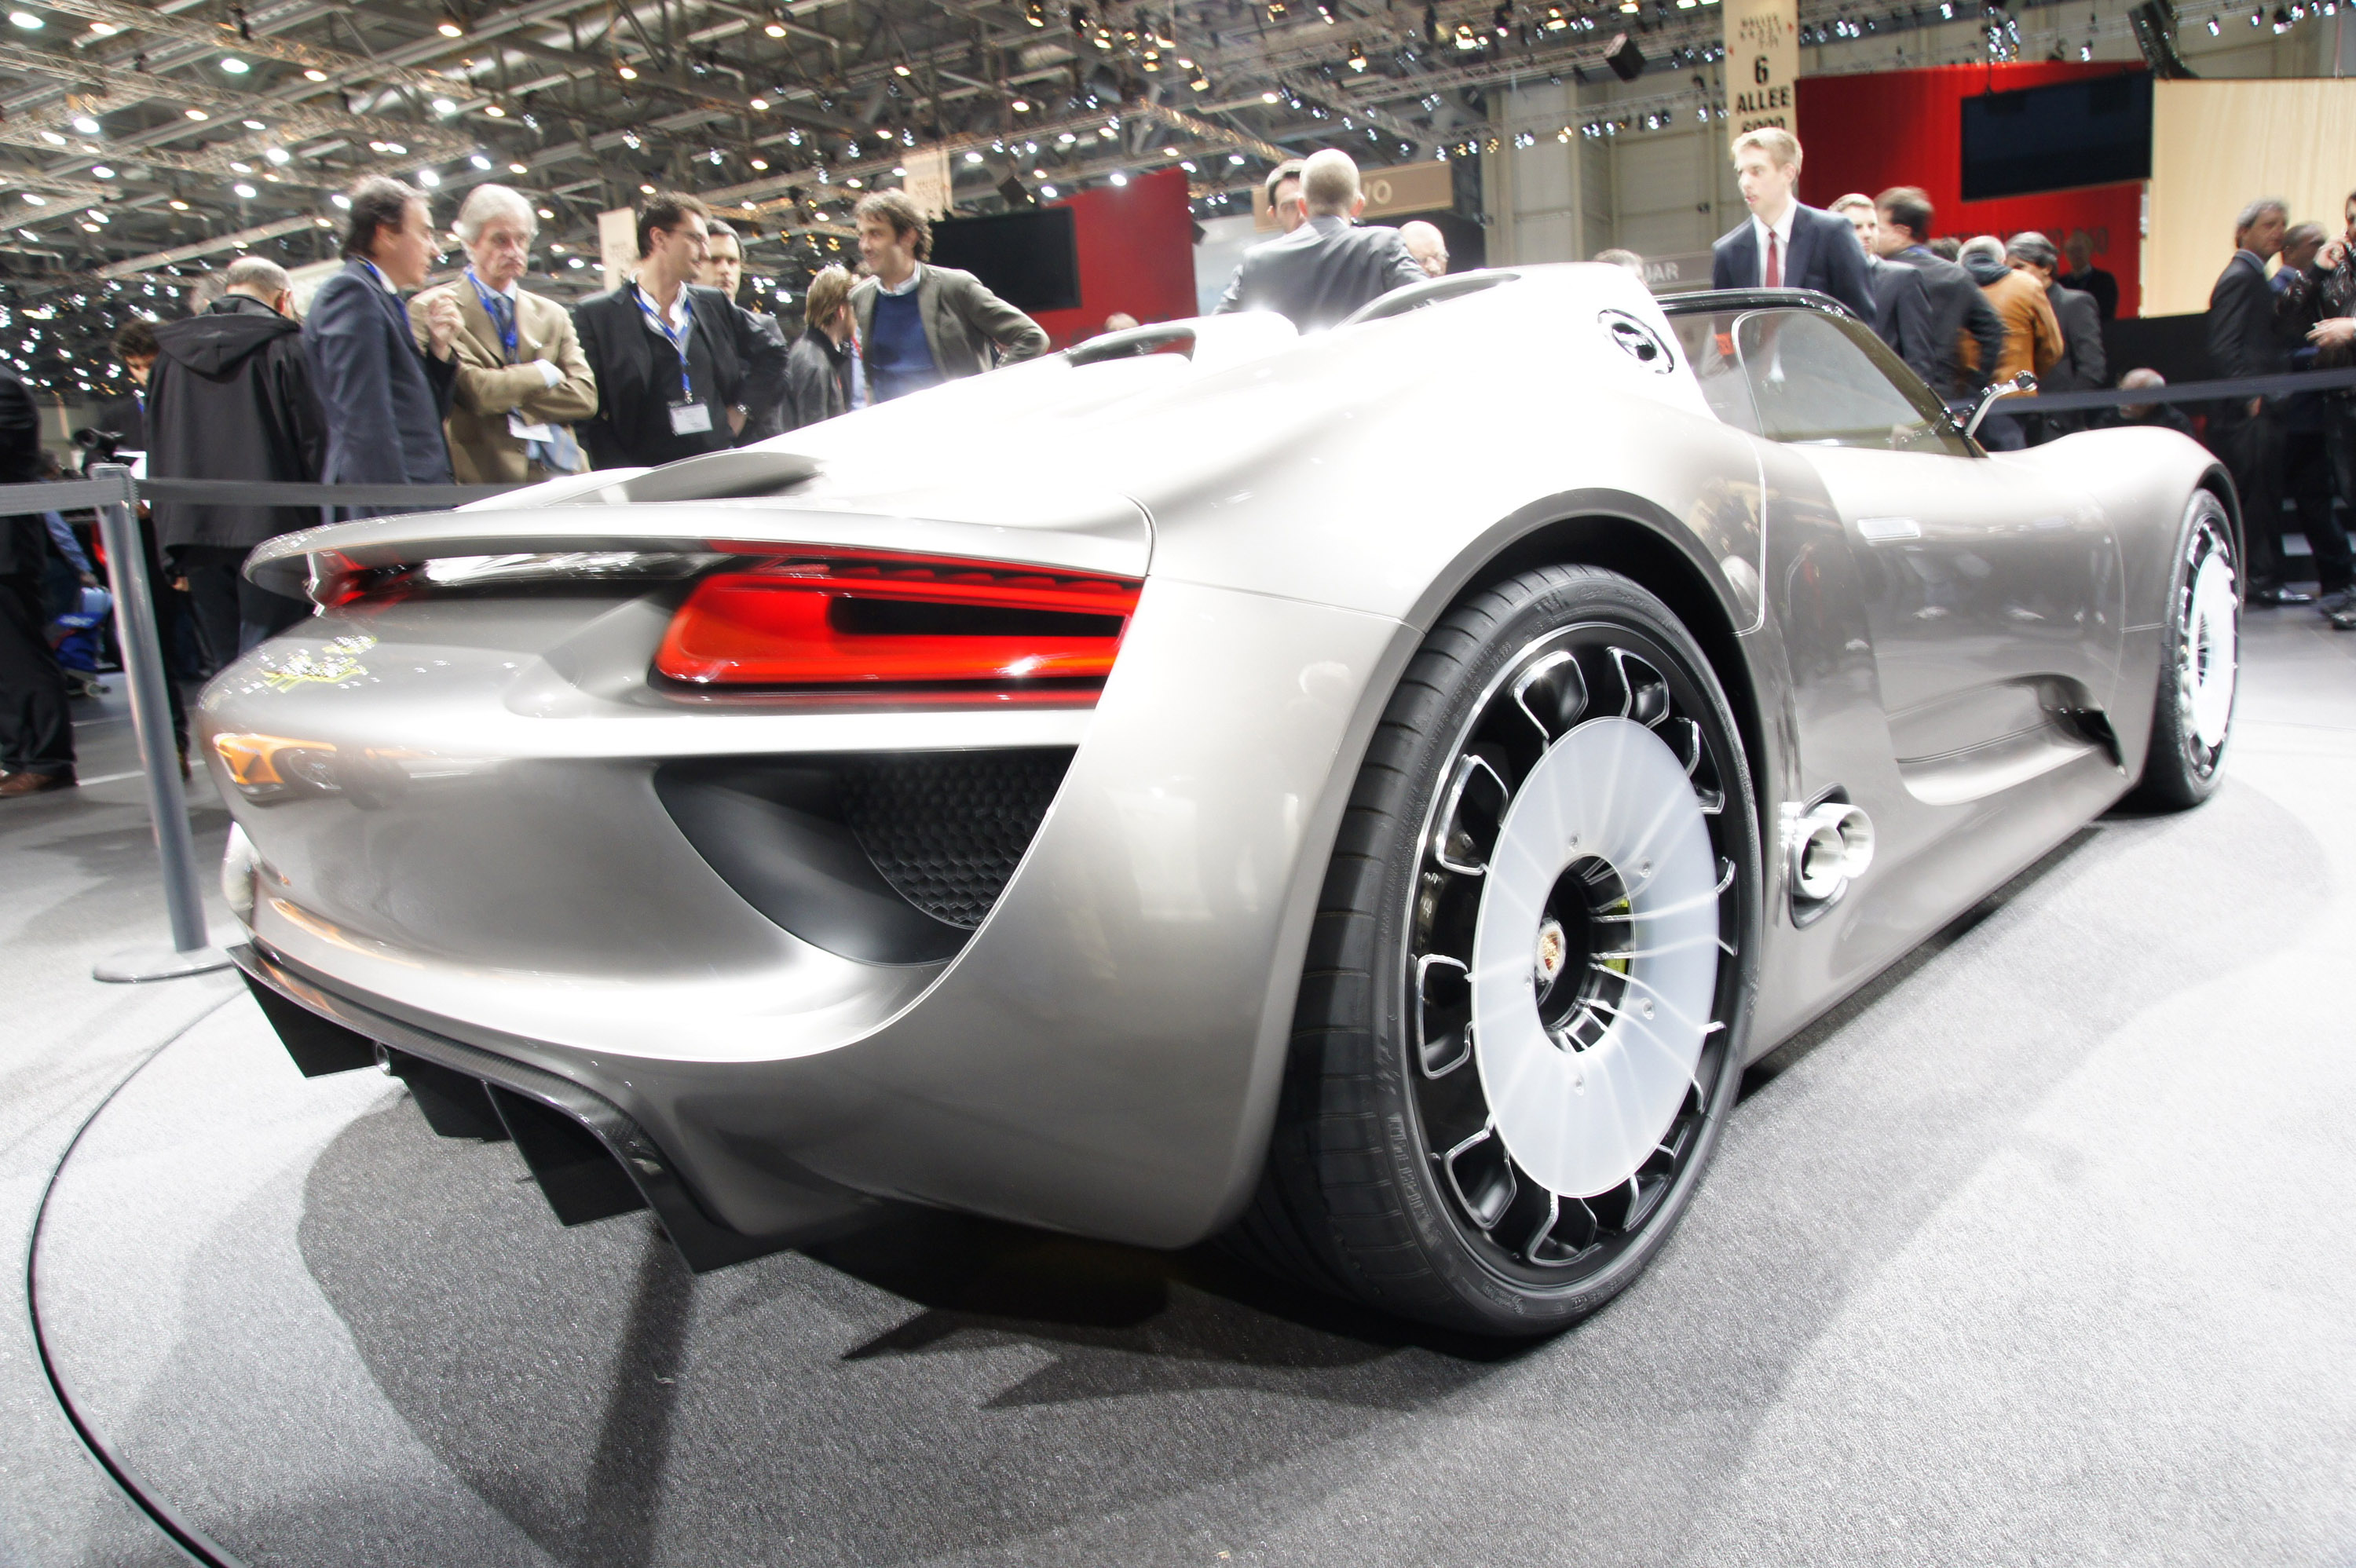 Porsche 918 Spyder concept fully revealed on